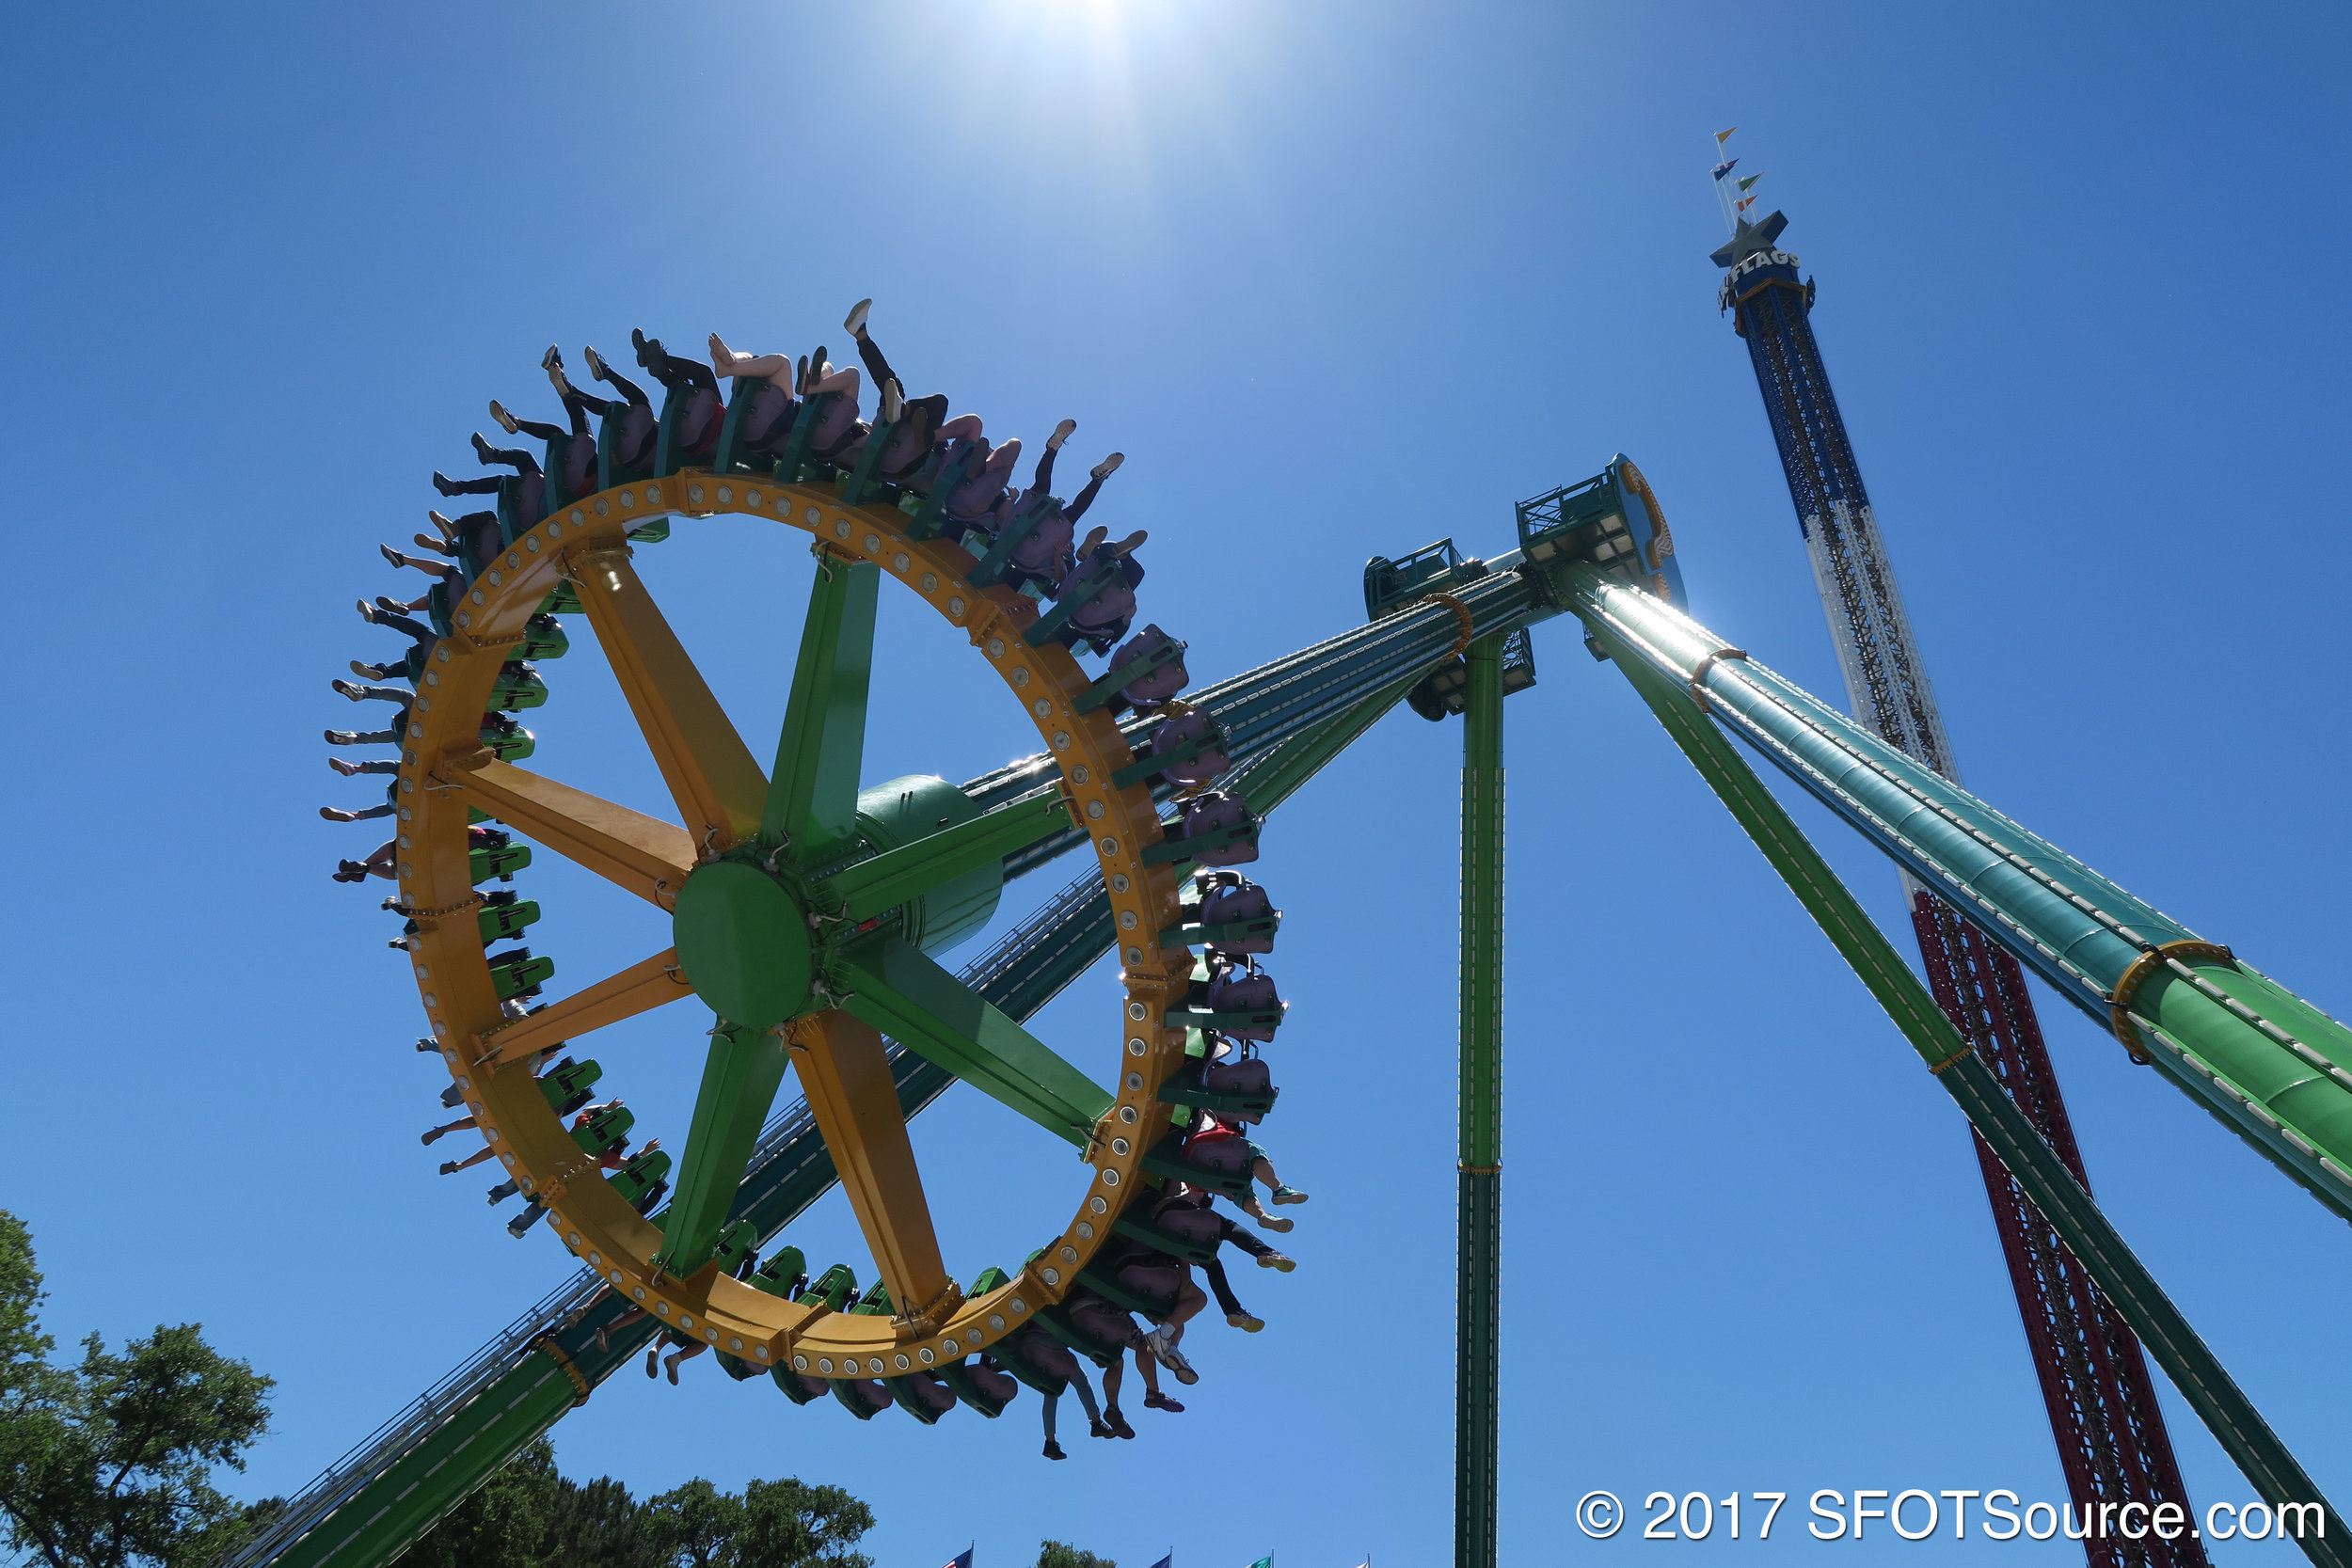 Riders face outward during the duration of the ride.